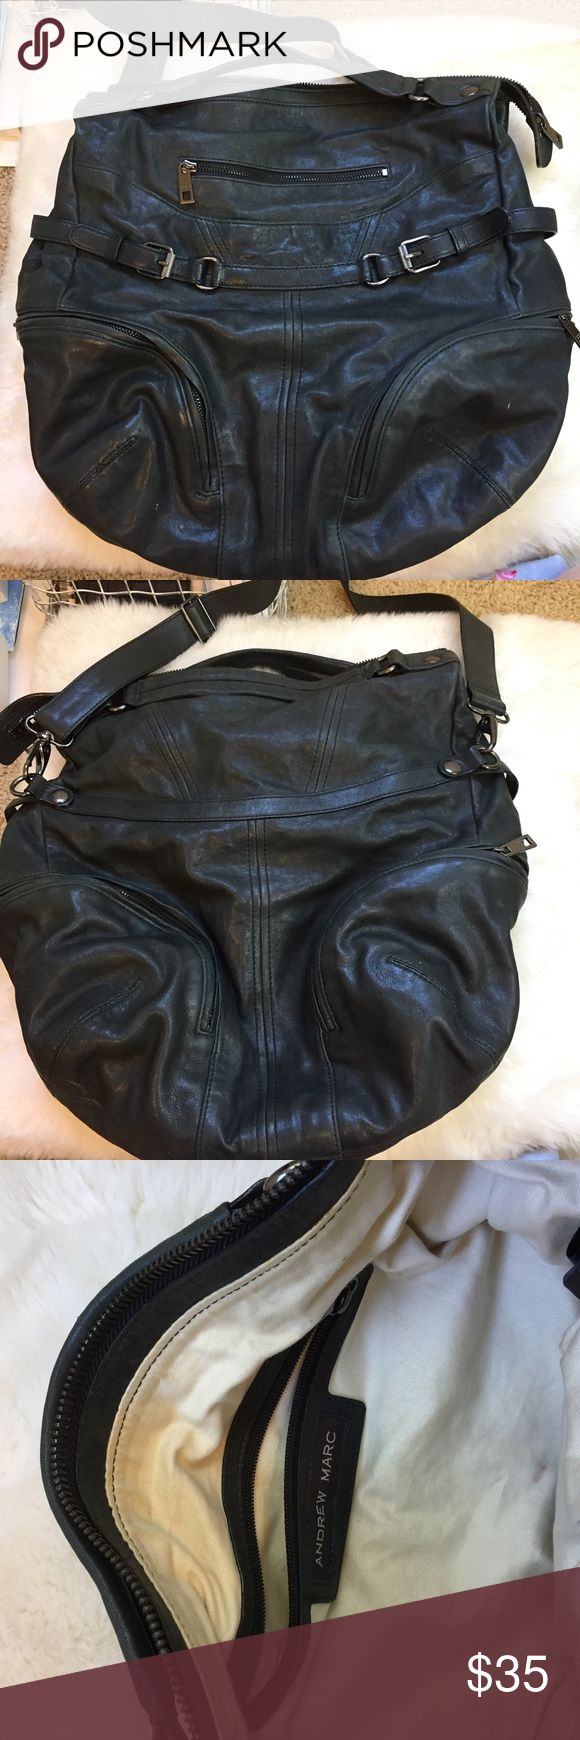 Black Andrew Marc Bag this is real leather and is in good used condition. this andrew marc bag is authentic. Questions? ask below! Andrew Marc Bags